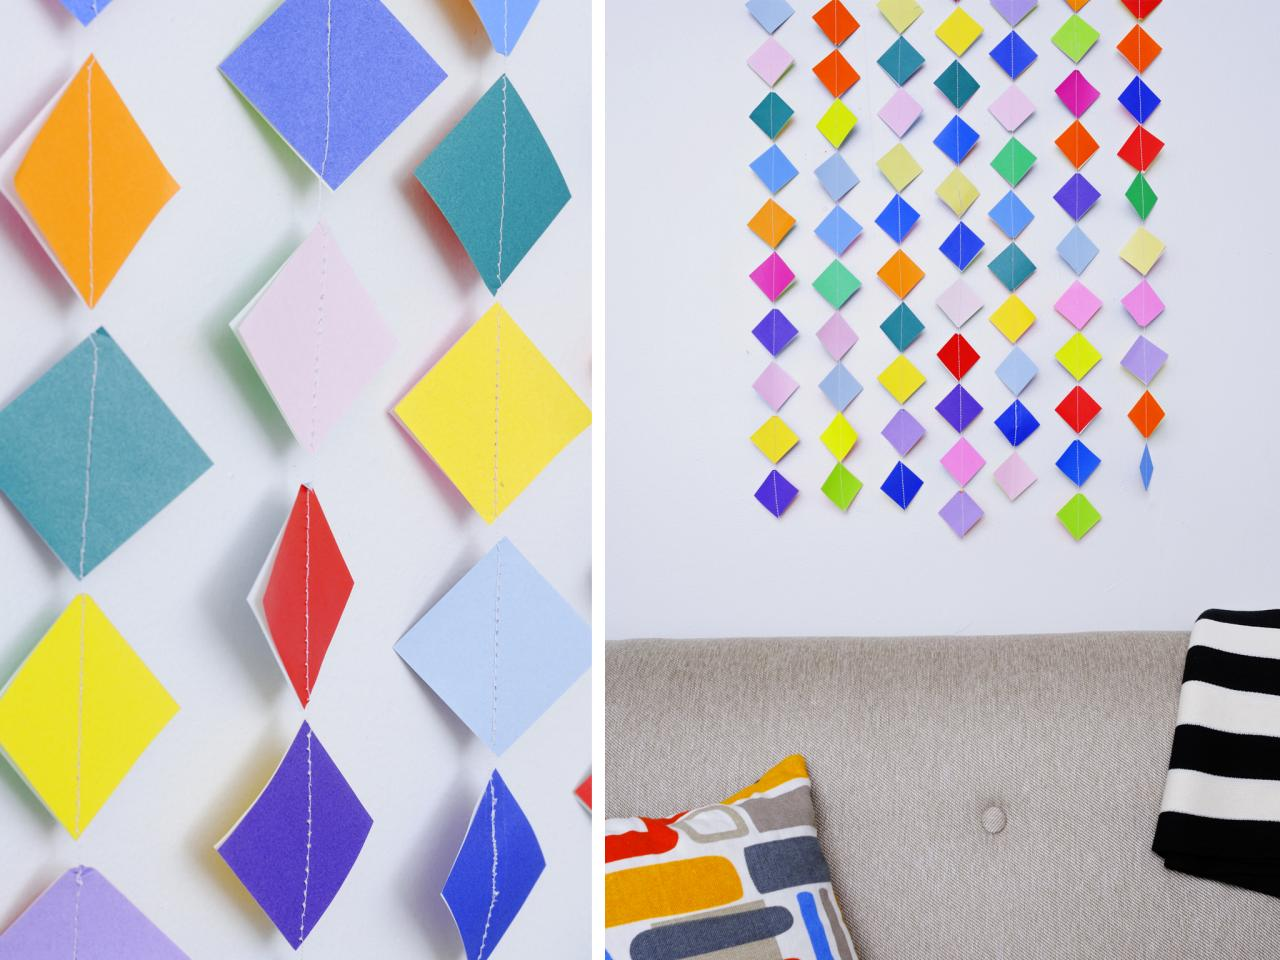 Buntes Papier 7 Diy Art Projects To Try Hgtv 39s Decorating And Design